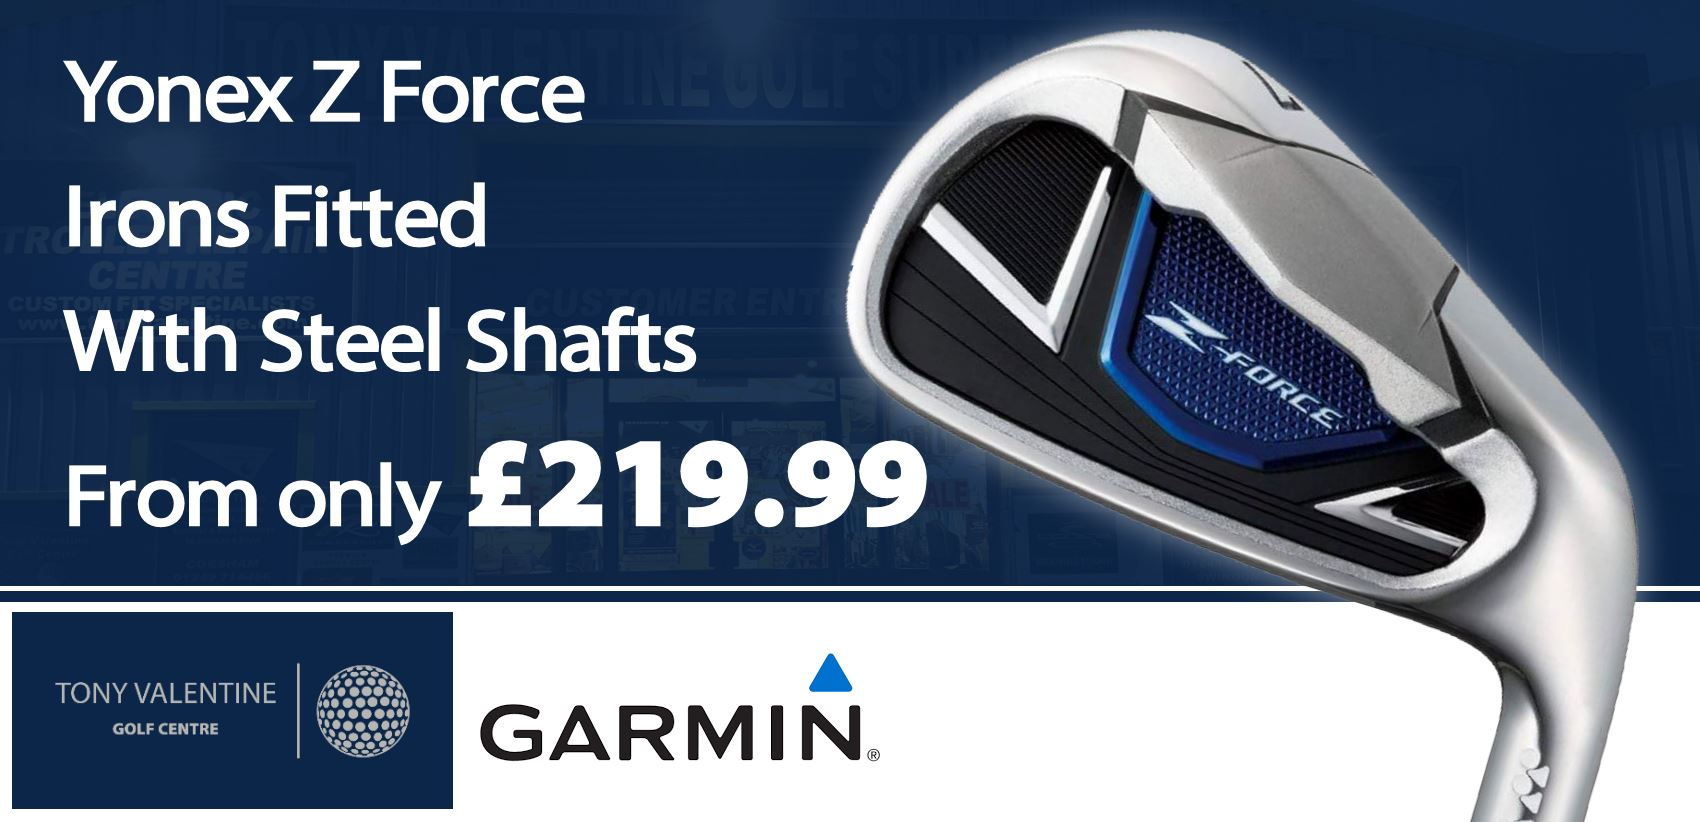 Yonex Z Force Irons from £219.99